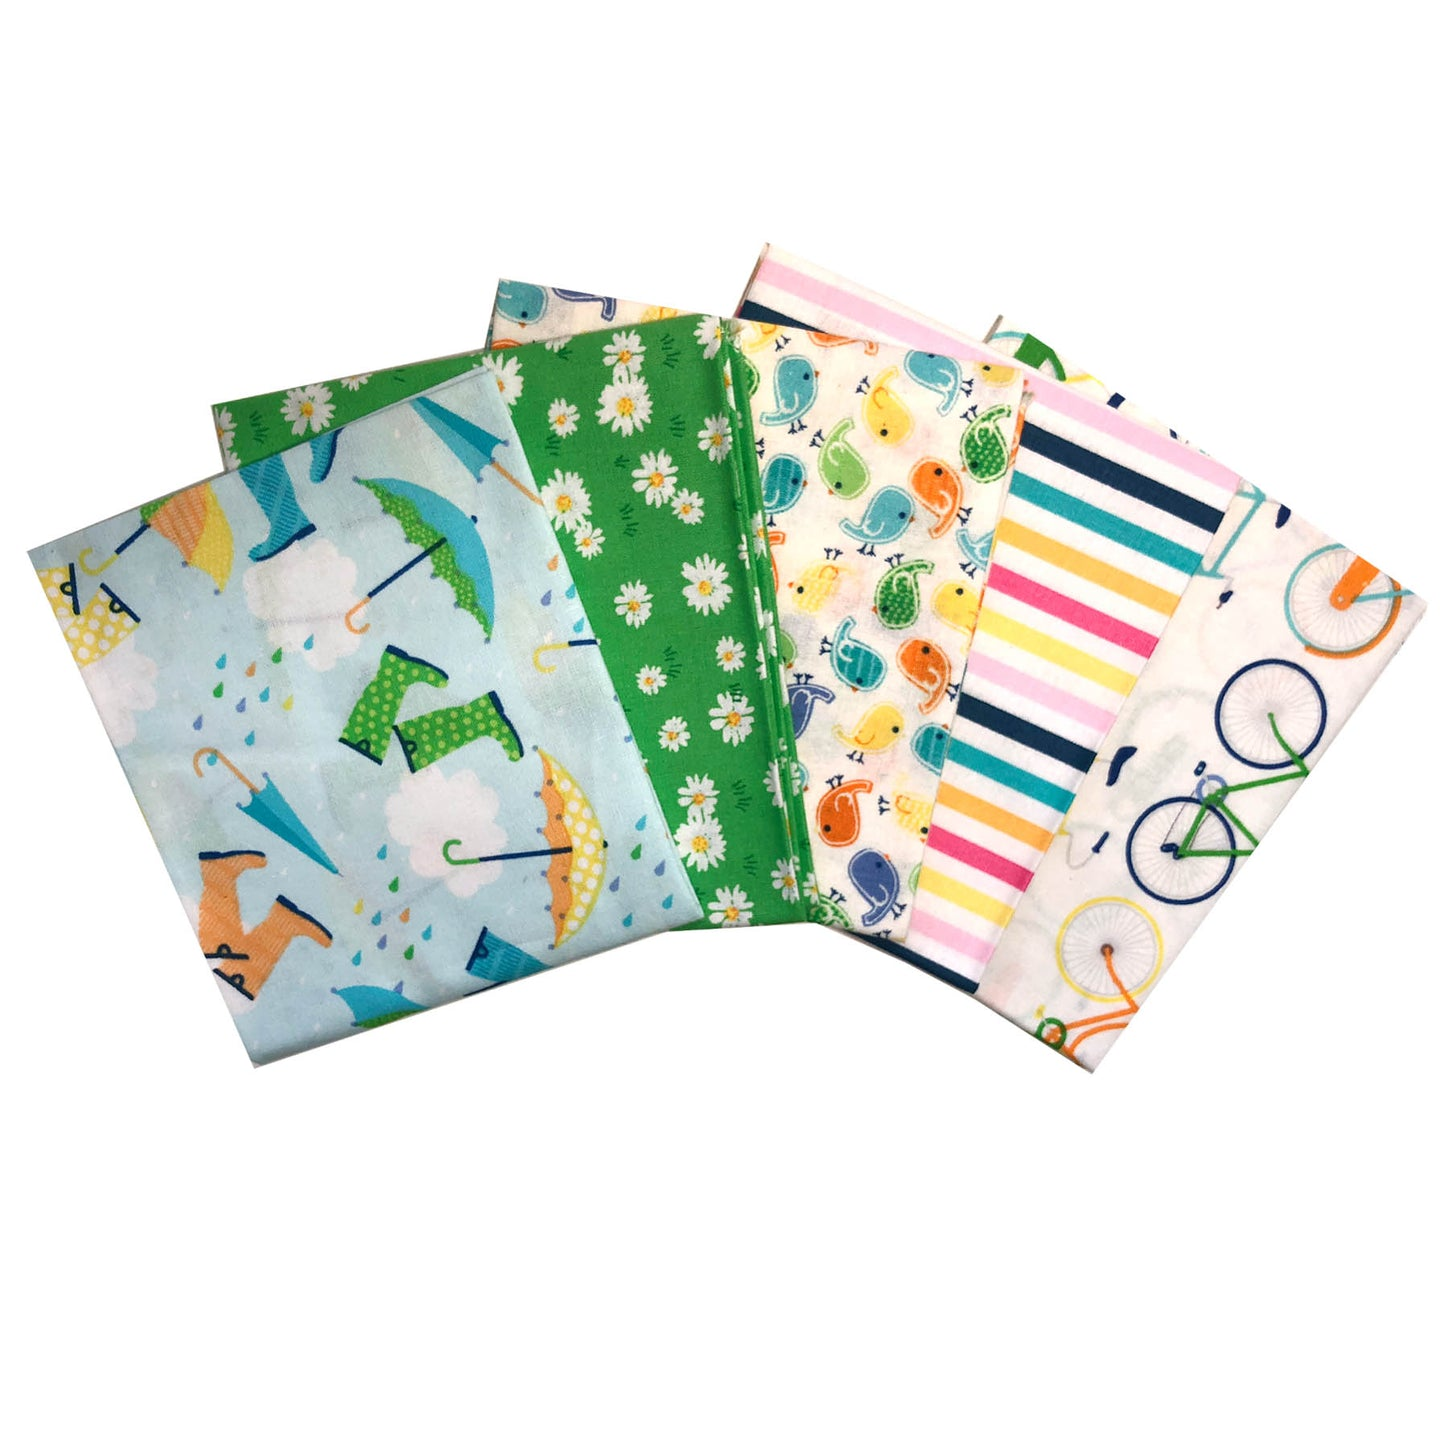 Spring wellies umbrellas fat quarter bundle of 5. 100% cotton fabric.